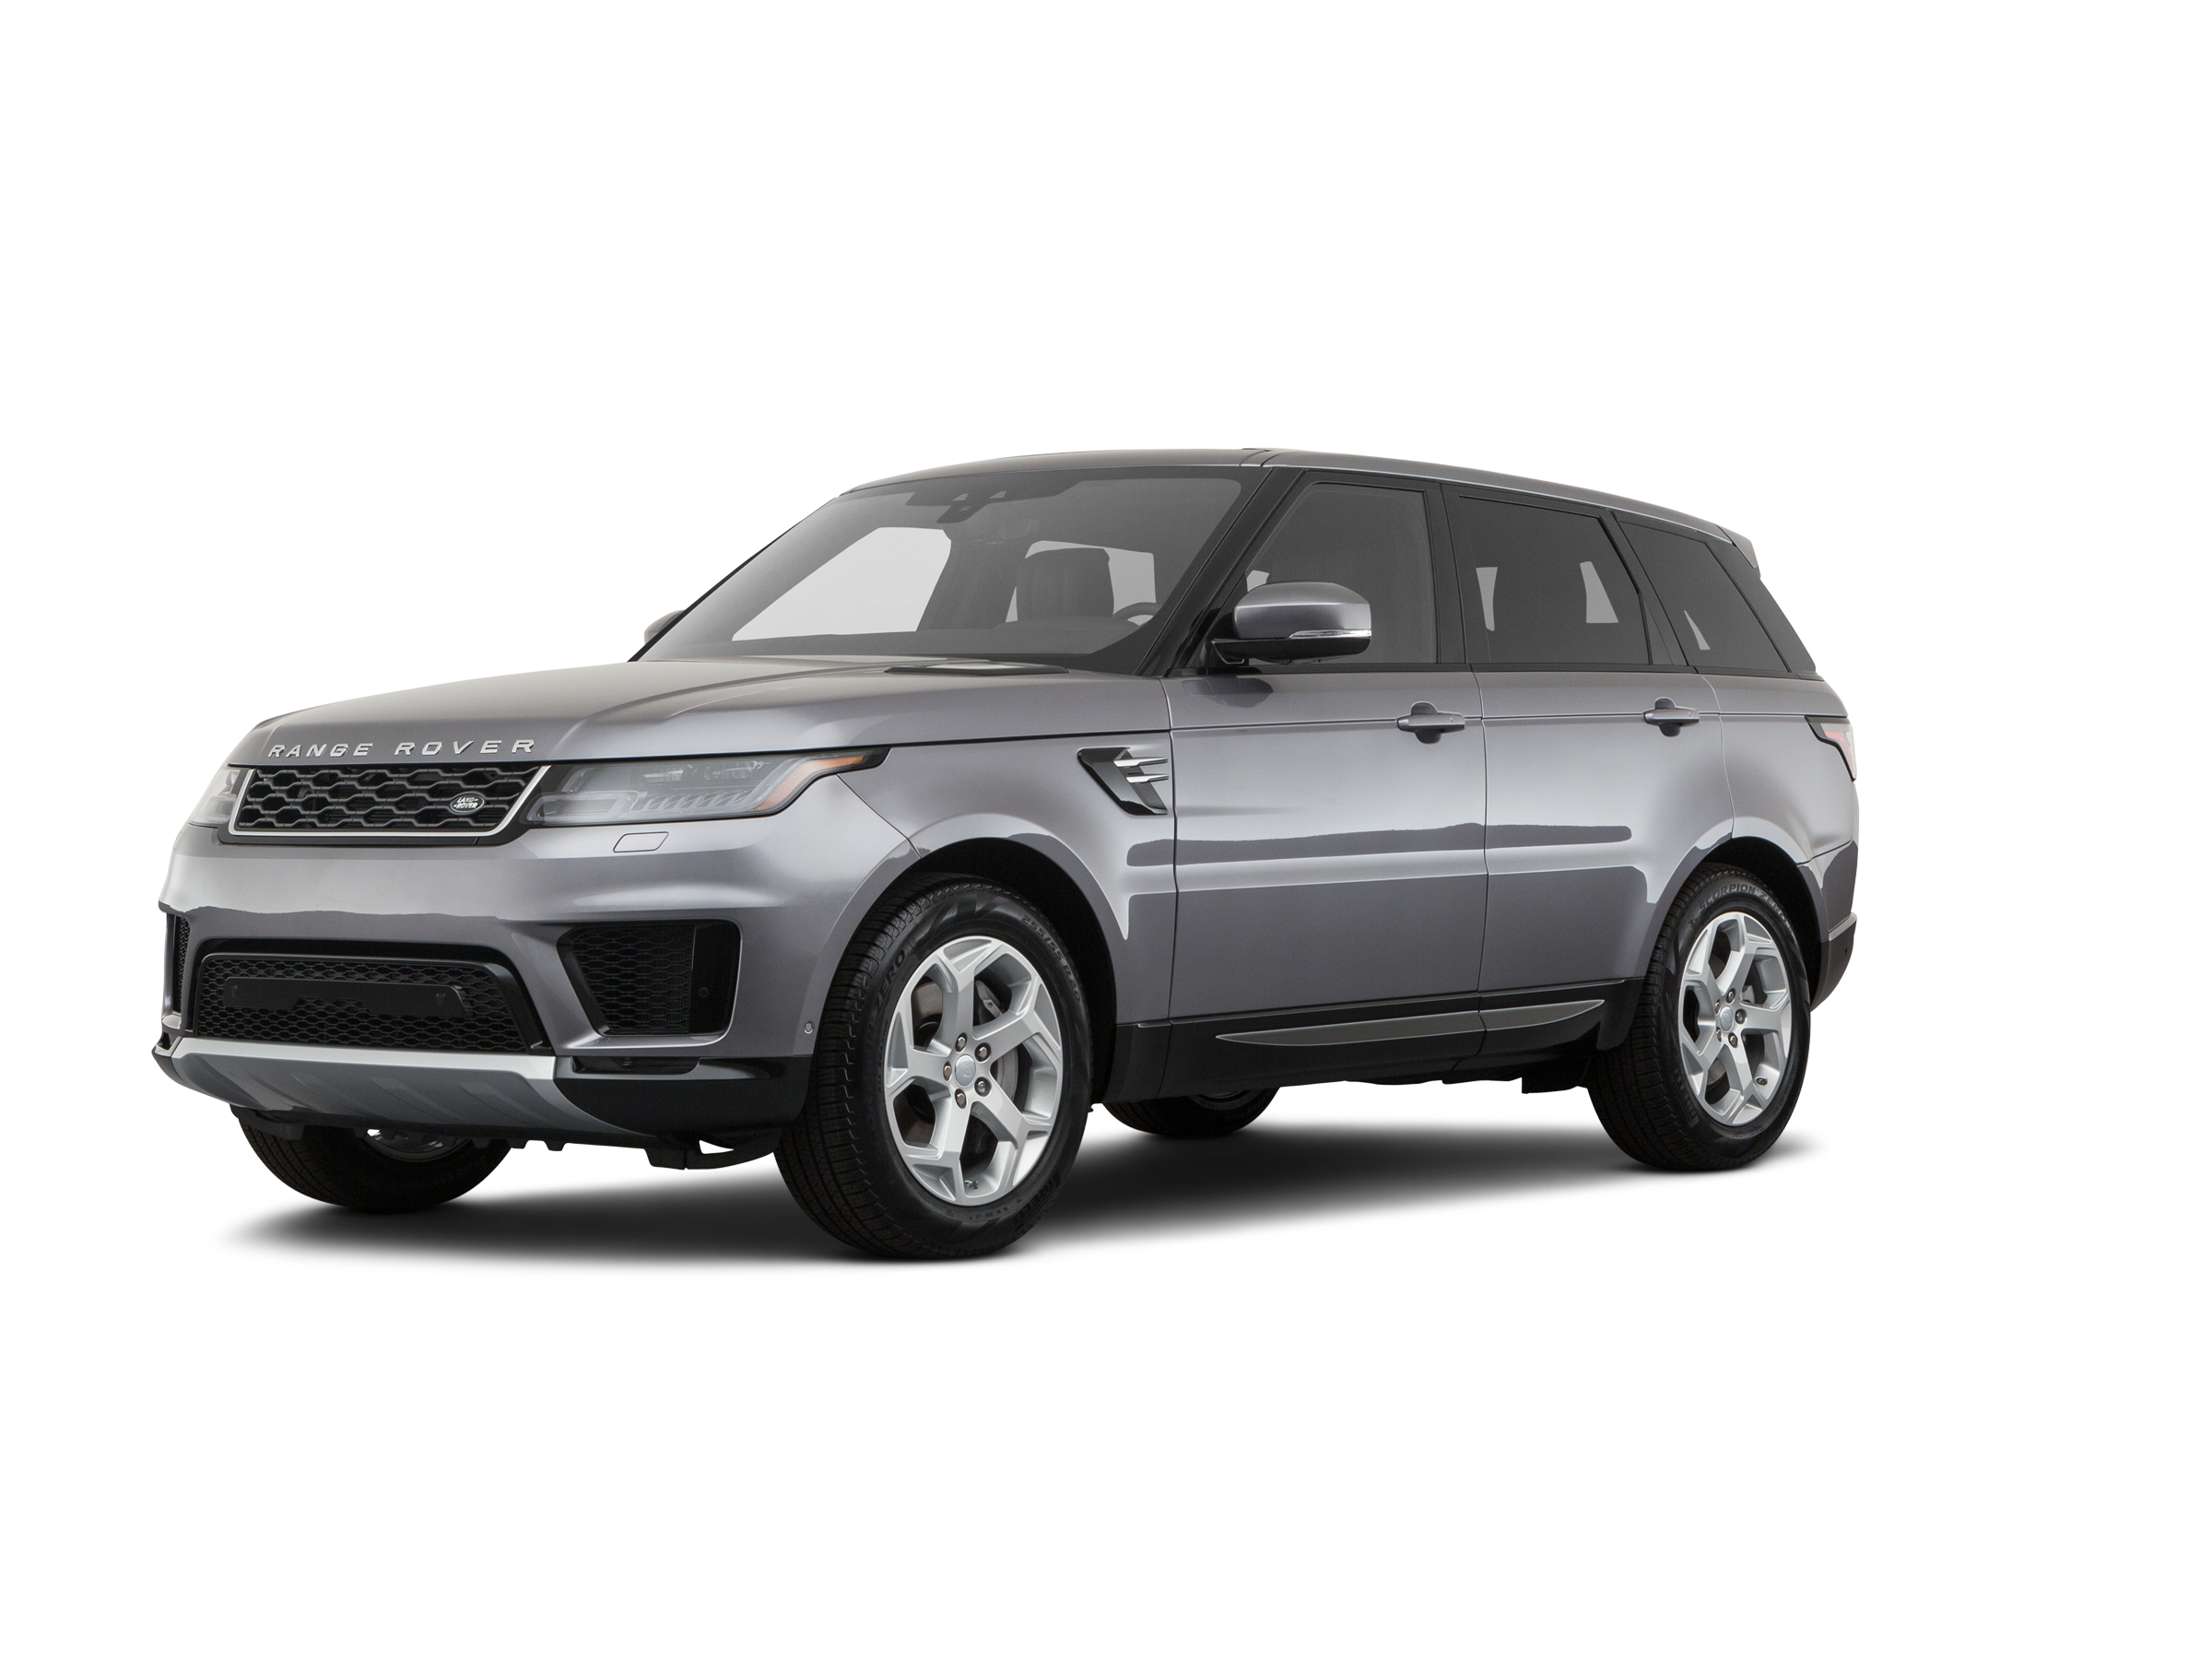 2021 Land Rover Range Rover Sport Prices Reviews Pictures Kelley Blue Book